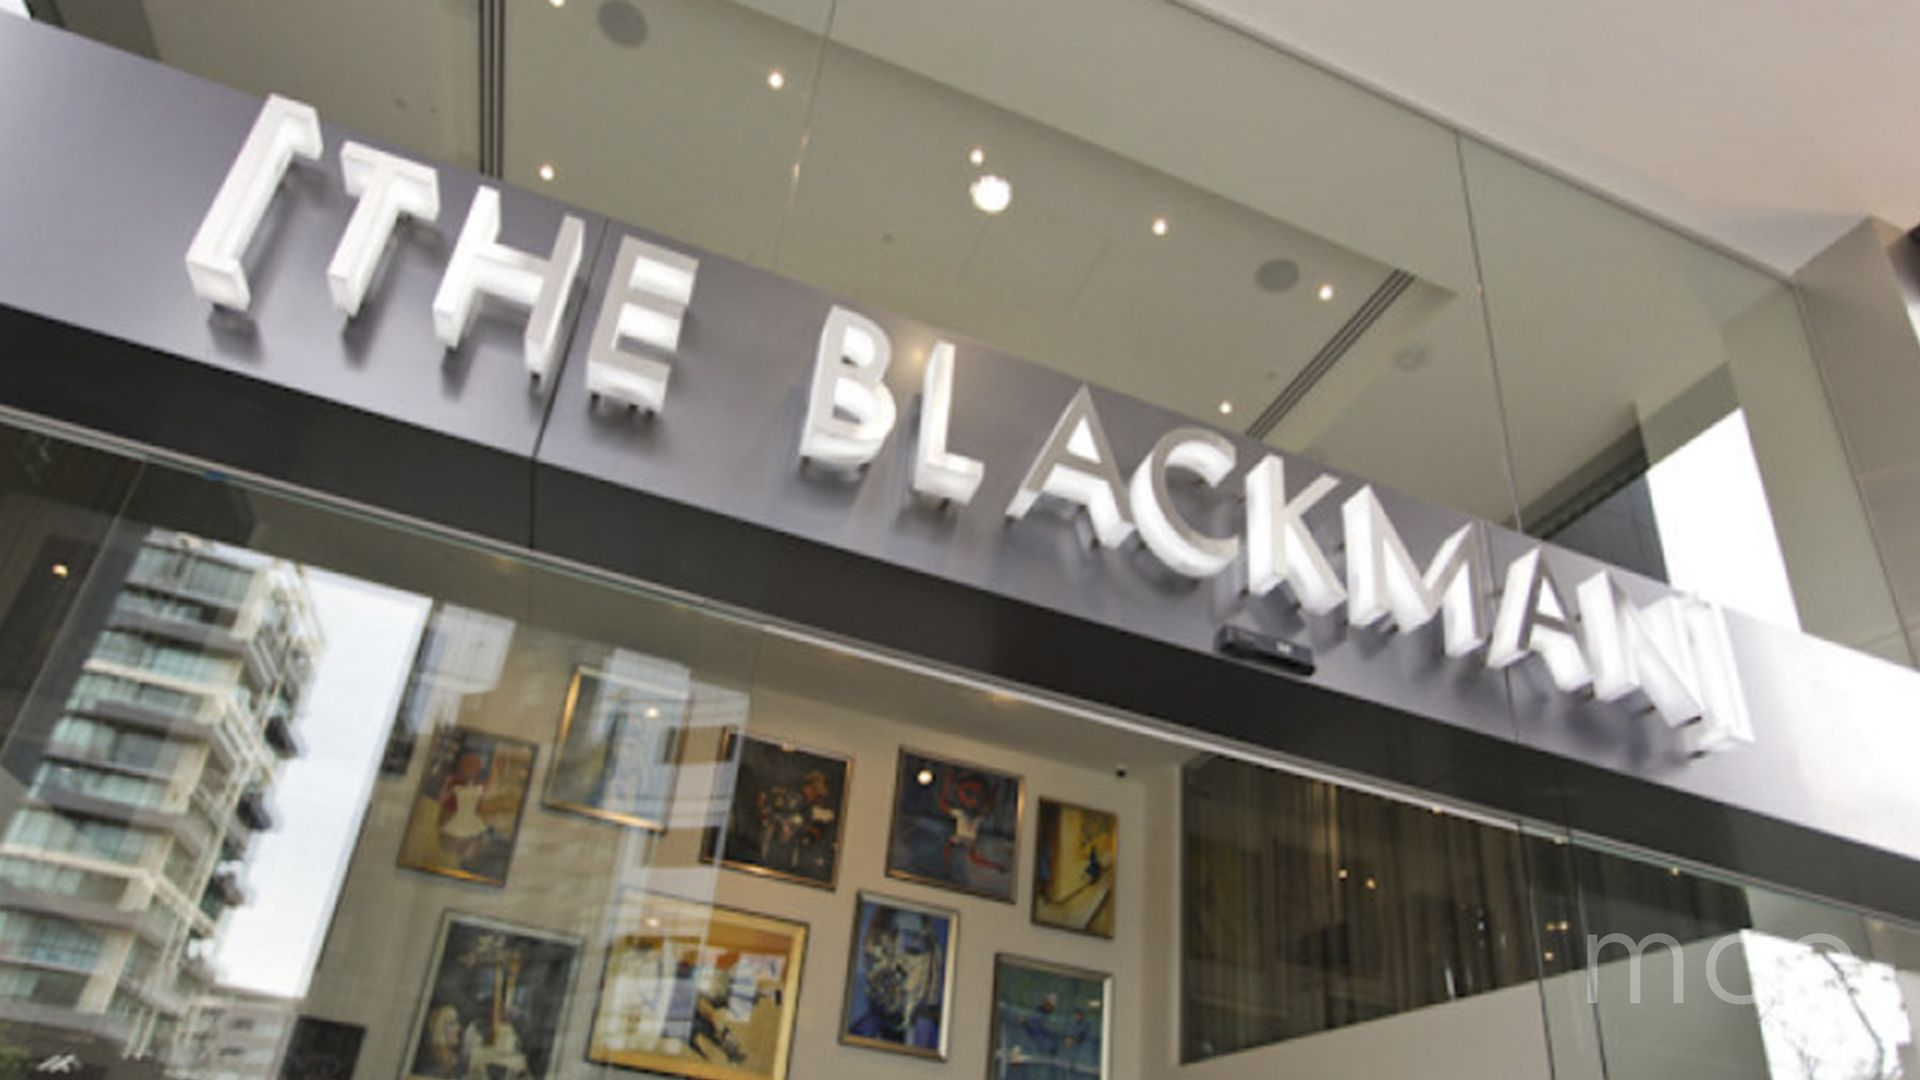 Long Term Lease with Strong Returns, Invest in The Blackman Today